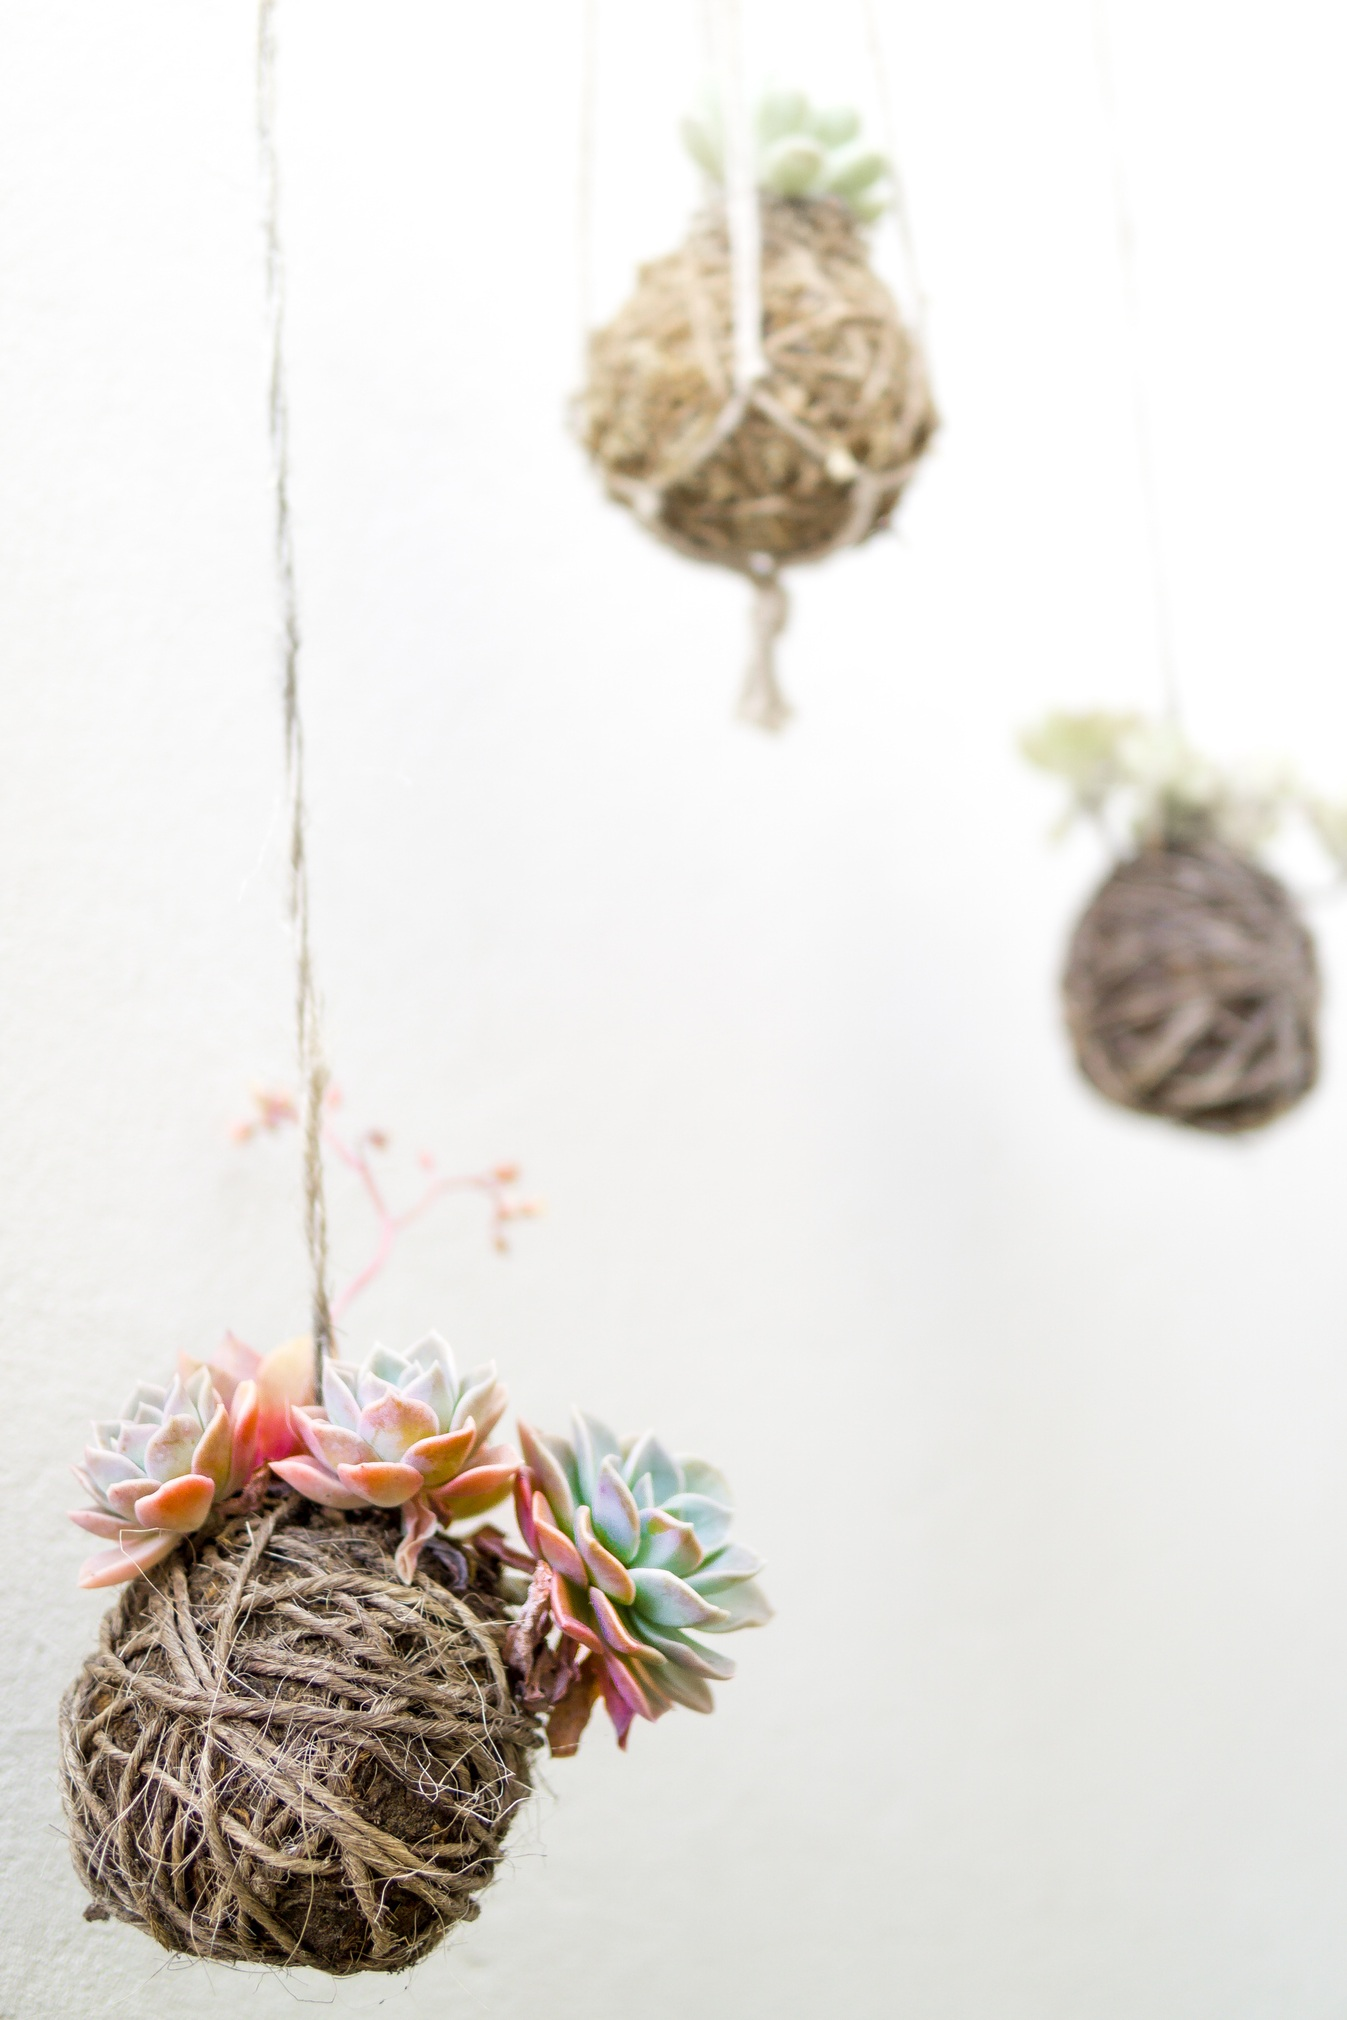 It doesn't have to be moss. These succulents are wrapped in soil and grapevine.